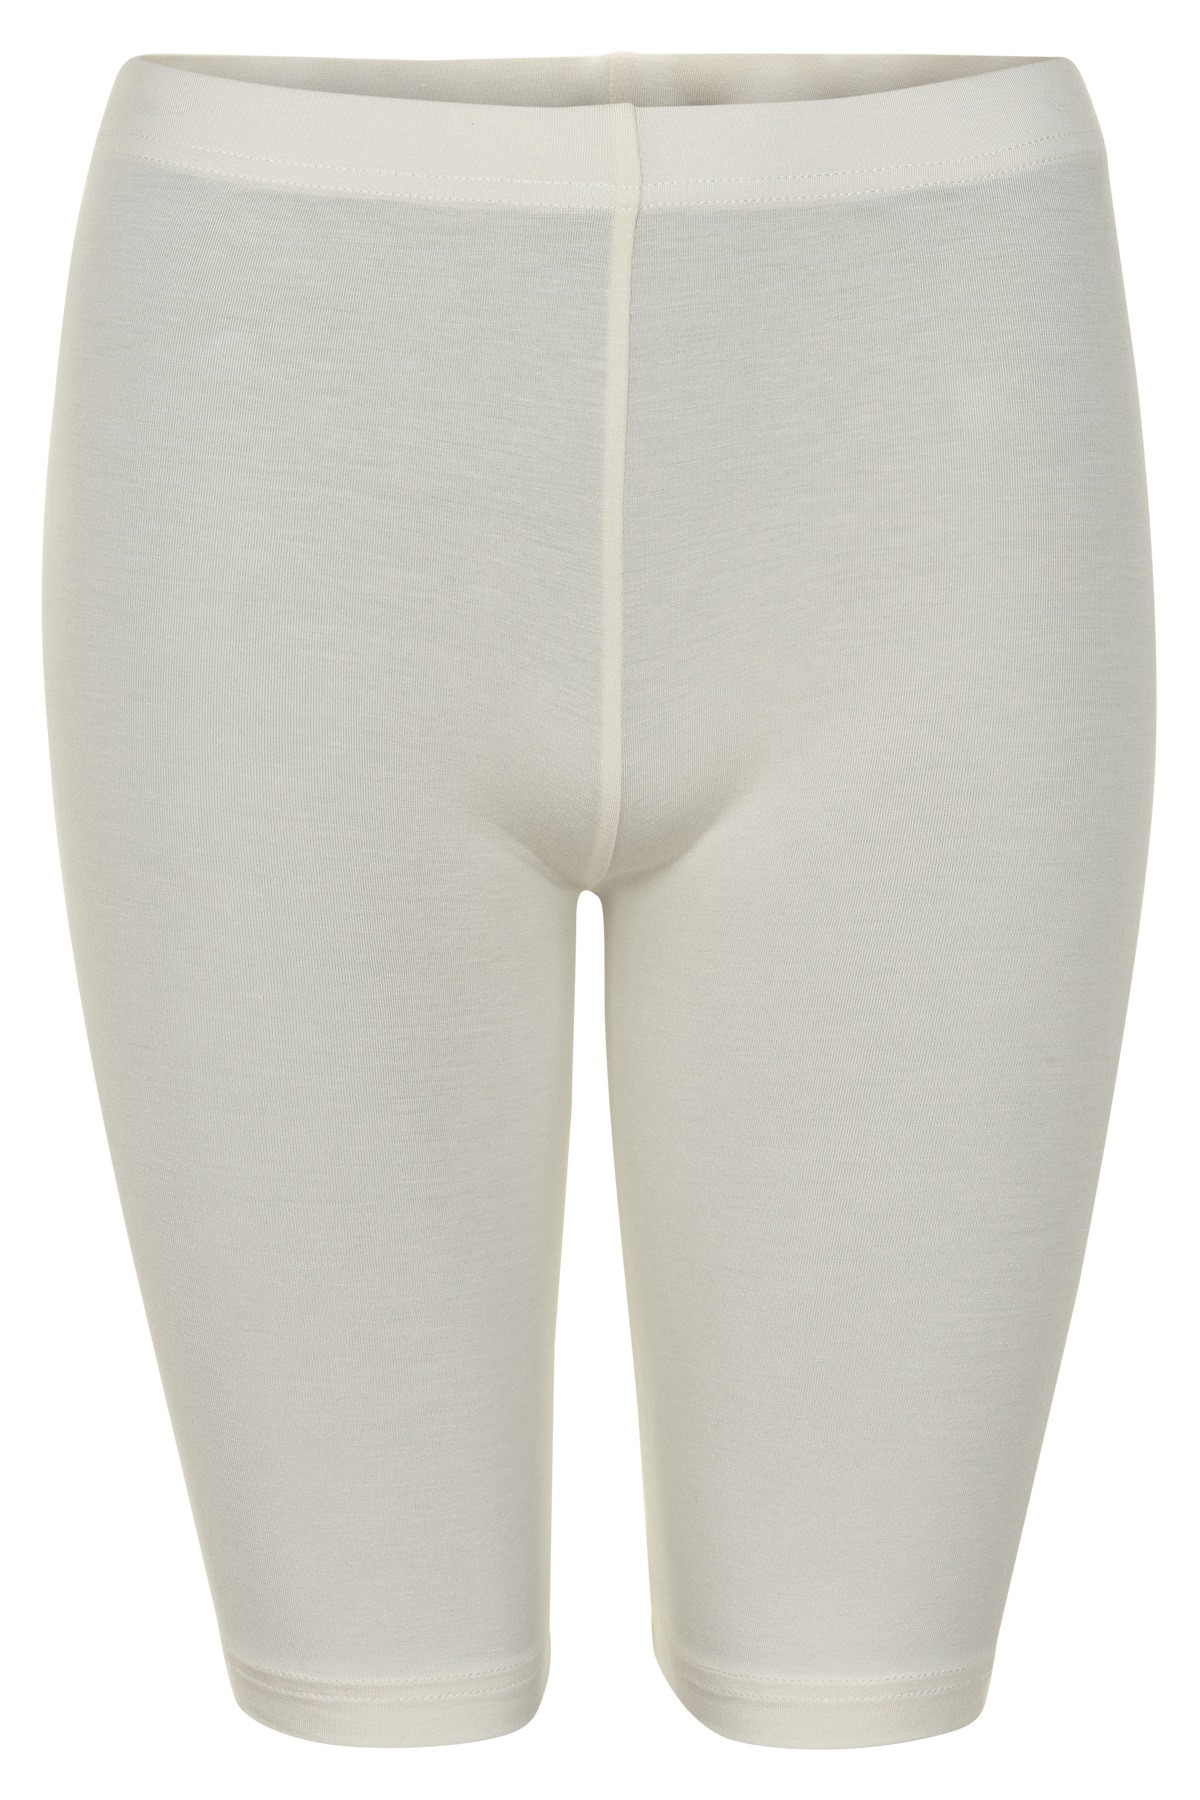 NOA NOA SHORT LEGGINGS 1-9349-2 00505 (Beige, XS)